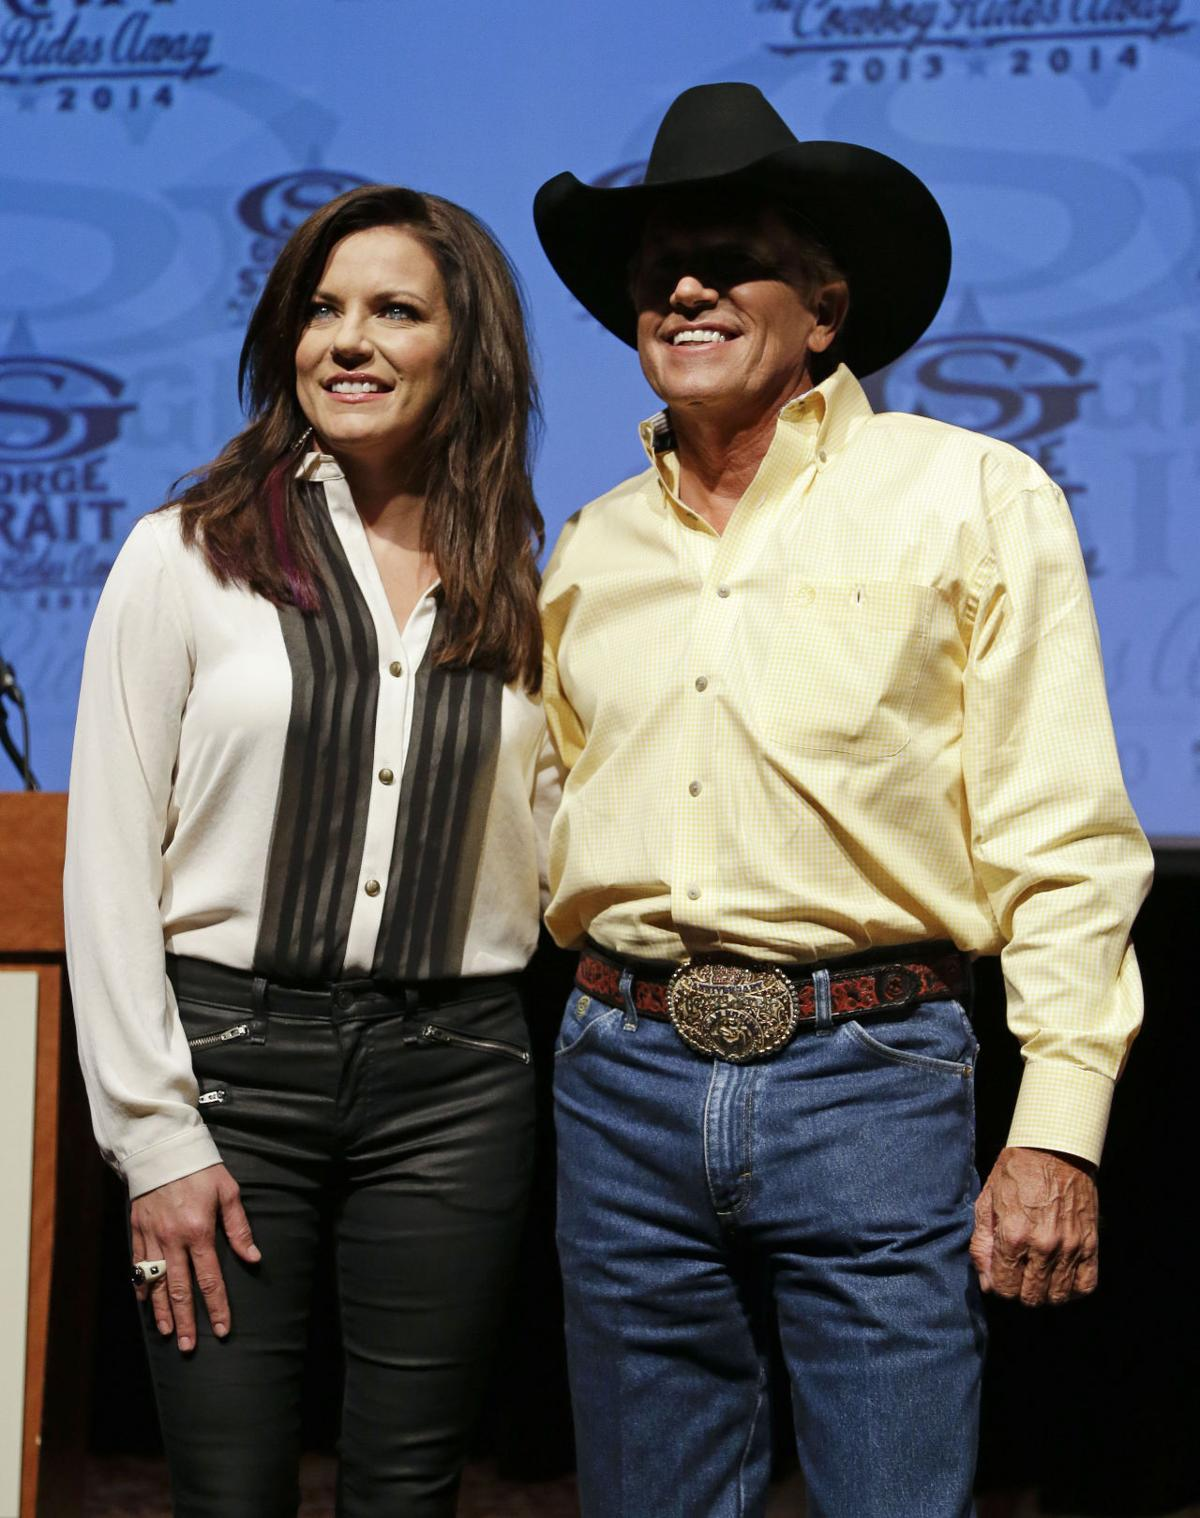 George Strait hitting the road for last time